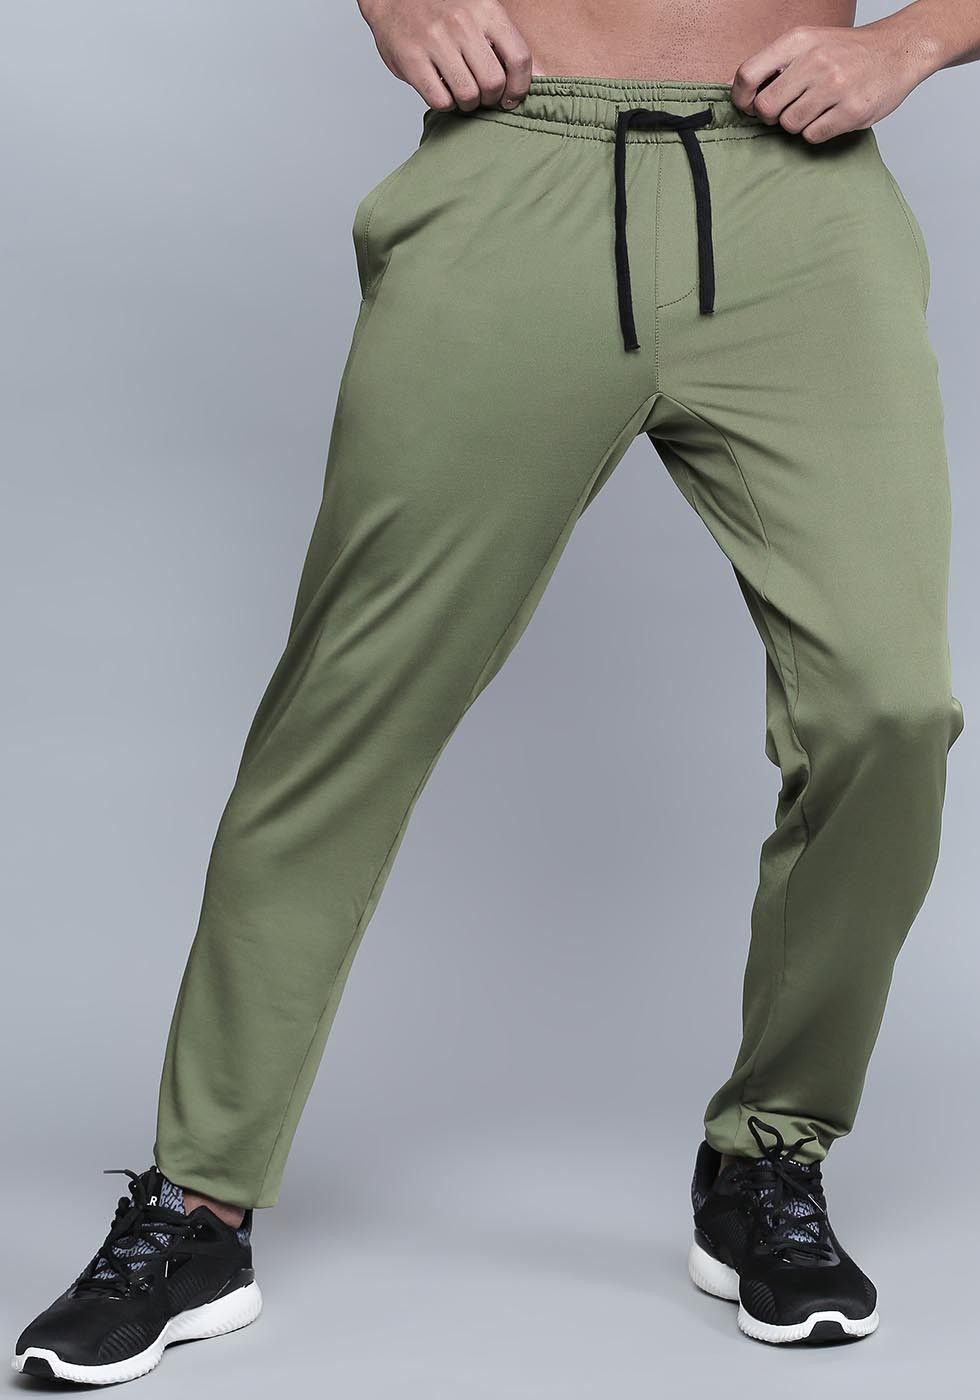 cdba107b51070 ESSENTIAL ACTIVEWEAR JOGGERS BY PROWL ₹1,799.00 | Prowlactive - An ...